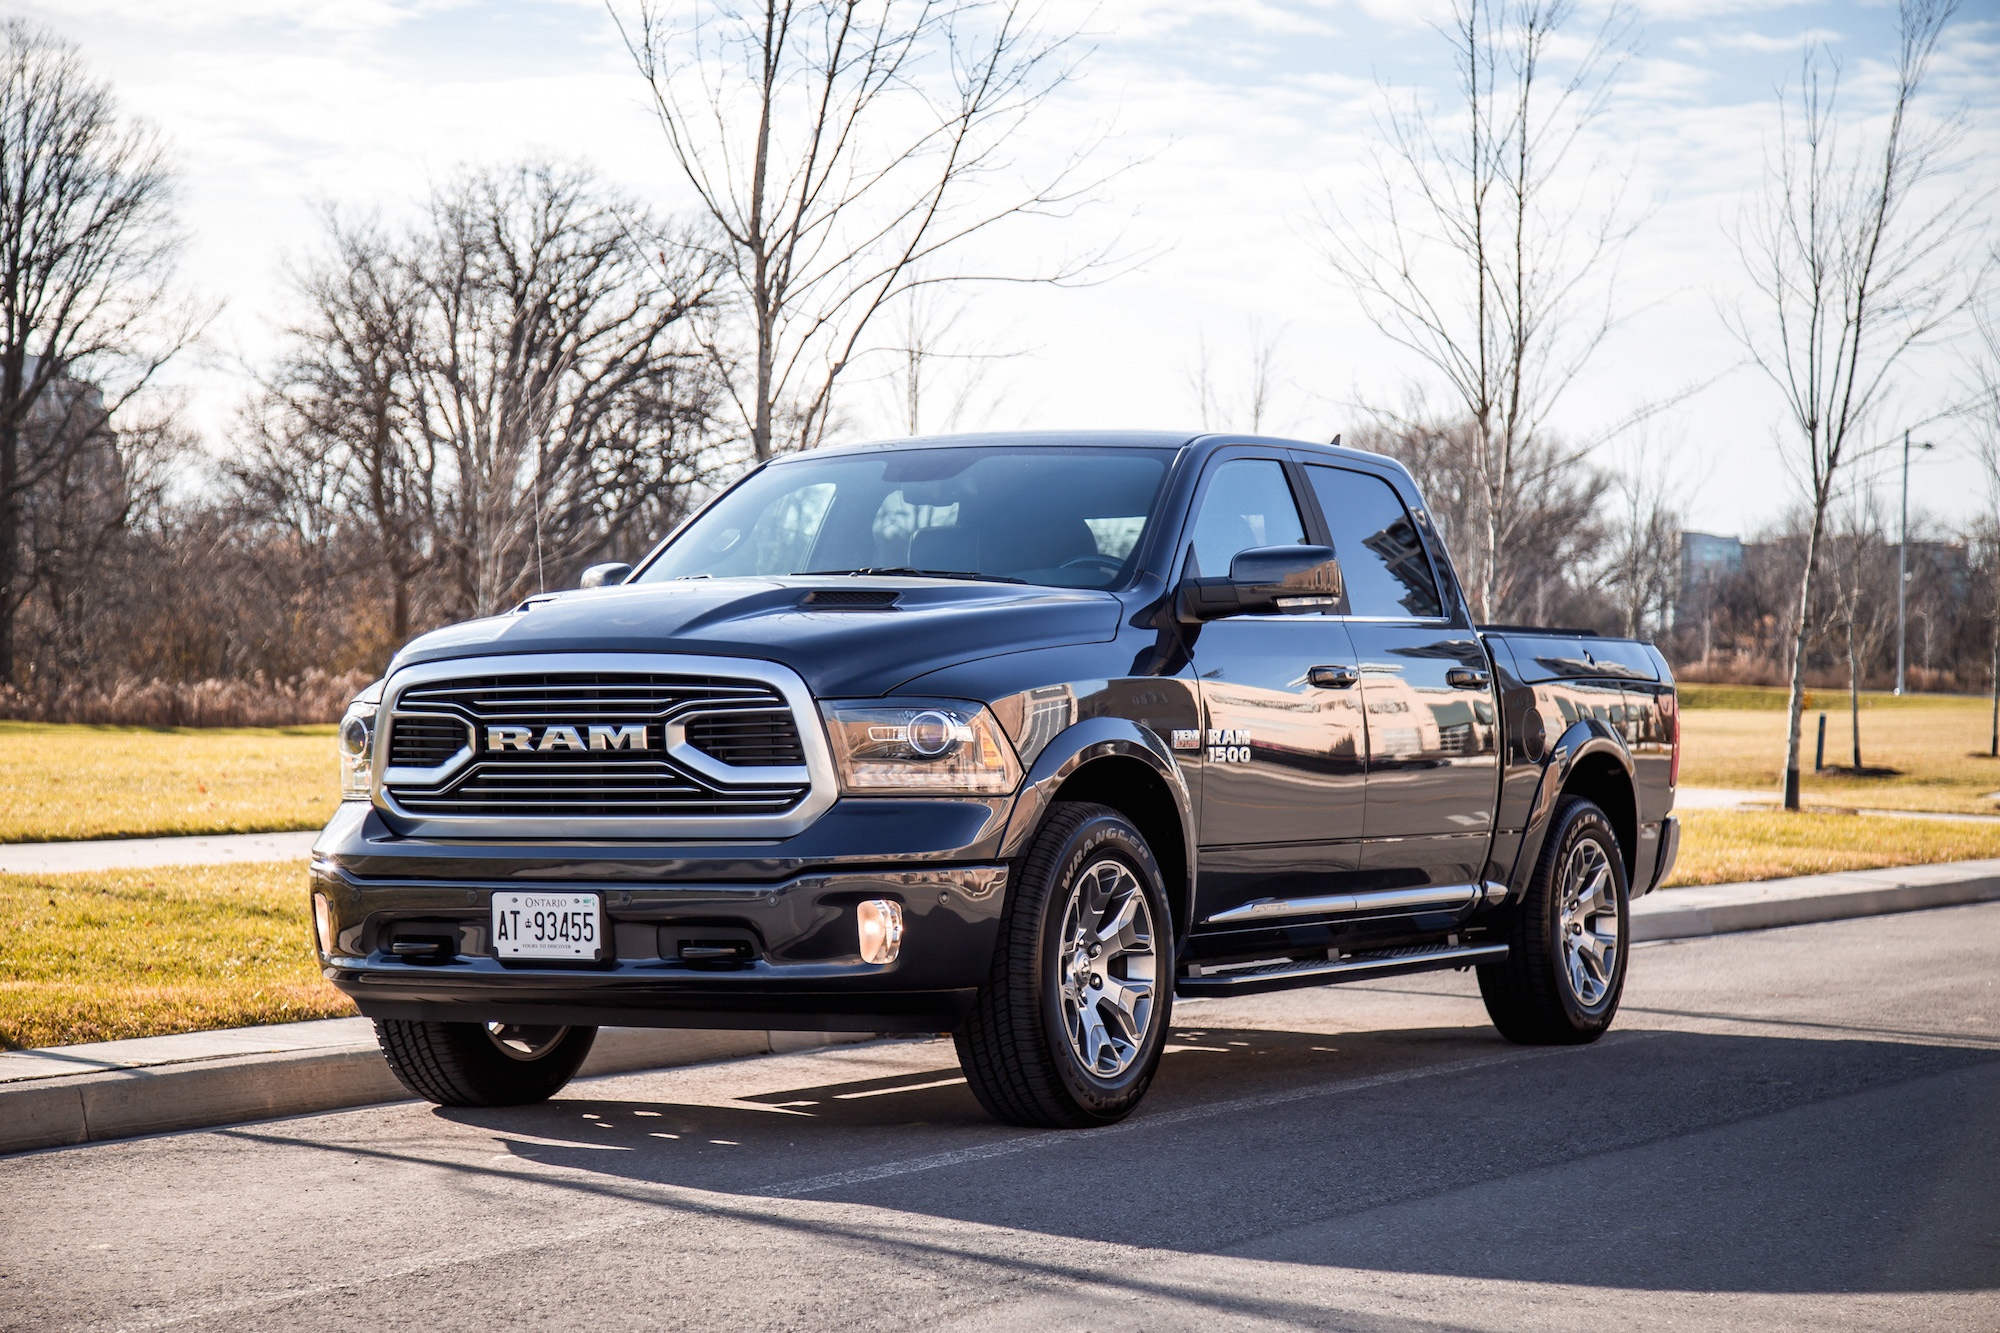 Bill Dodge Bmw >> Review: 2018 RAM 1500 Limited Tungsten Edition | Canadian ...